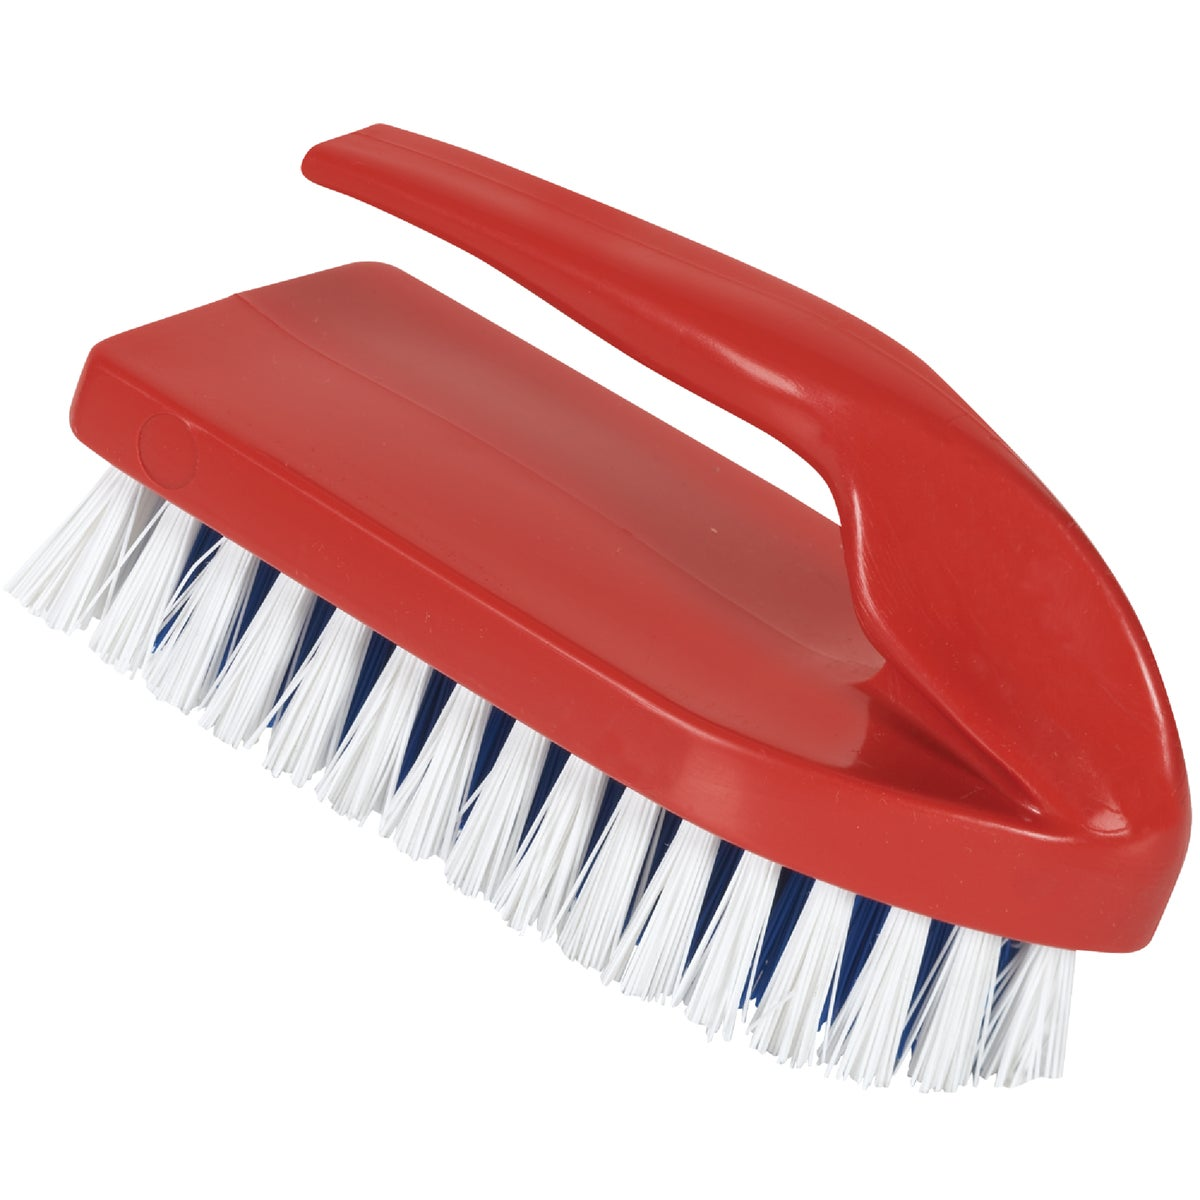 SHOW RING BRUSH - SRB23 by Decker Manufacturing